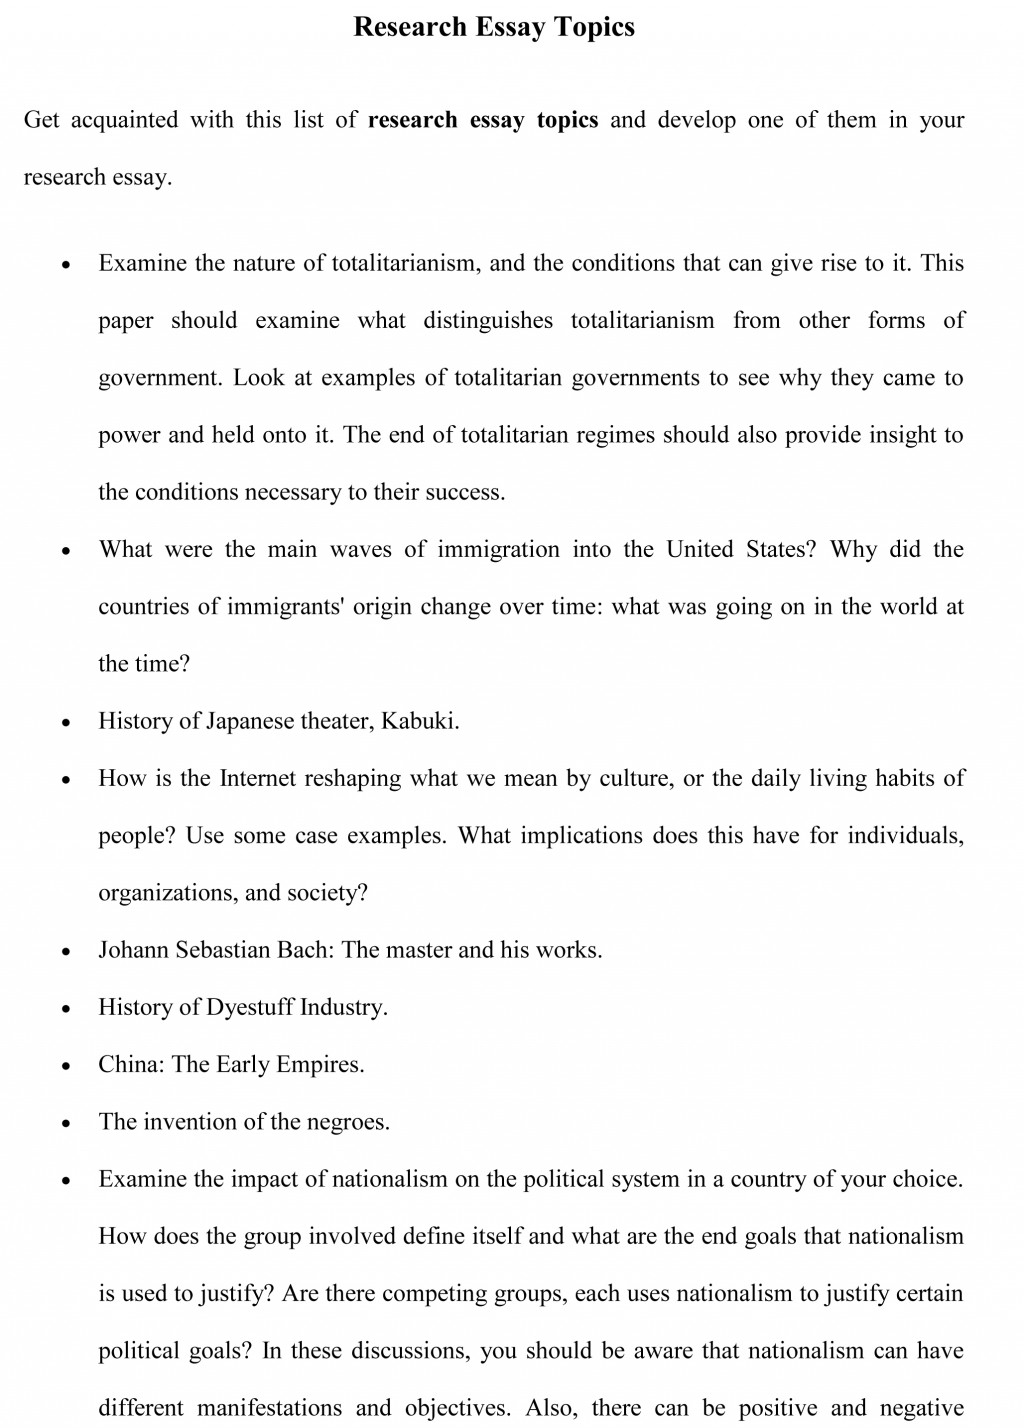 002 Research Essay Topics Sample Paper Unusual Ideas Topic For Developmental Psychology Unique High School American History Large